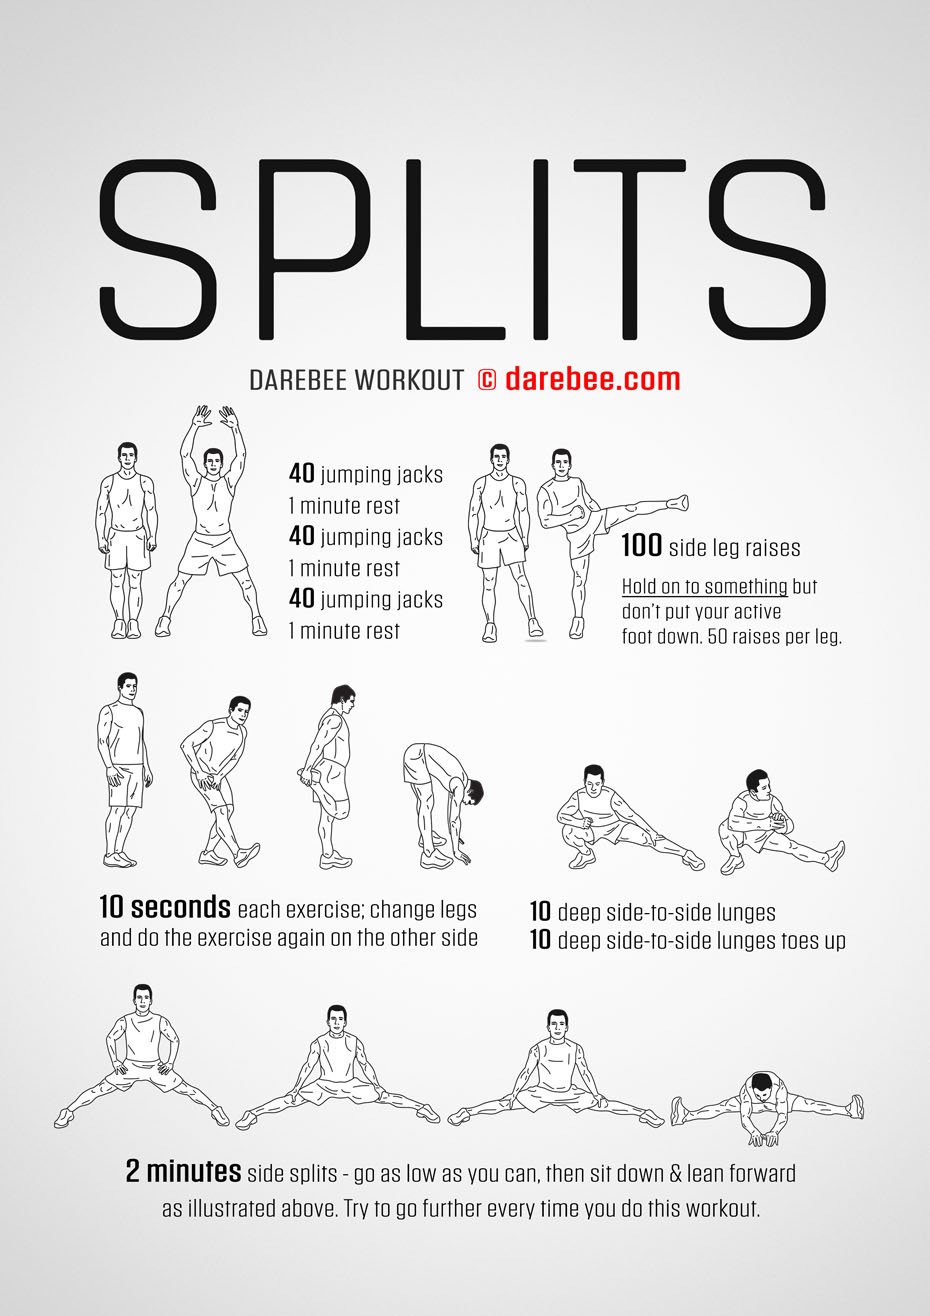 Splits workout guide